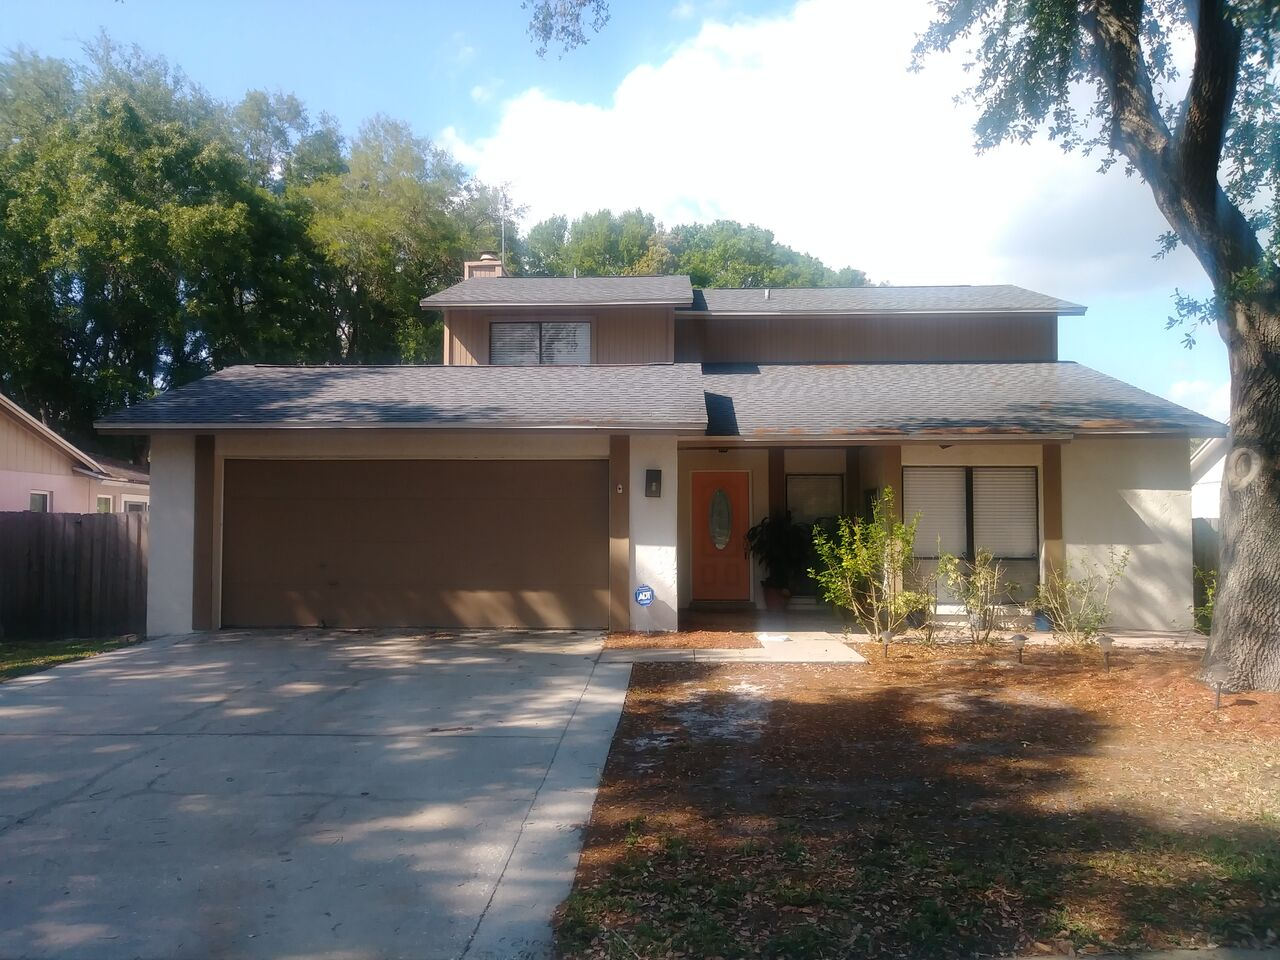 Photo of 5001 Melrow Ct, Tampa, FL, 33624